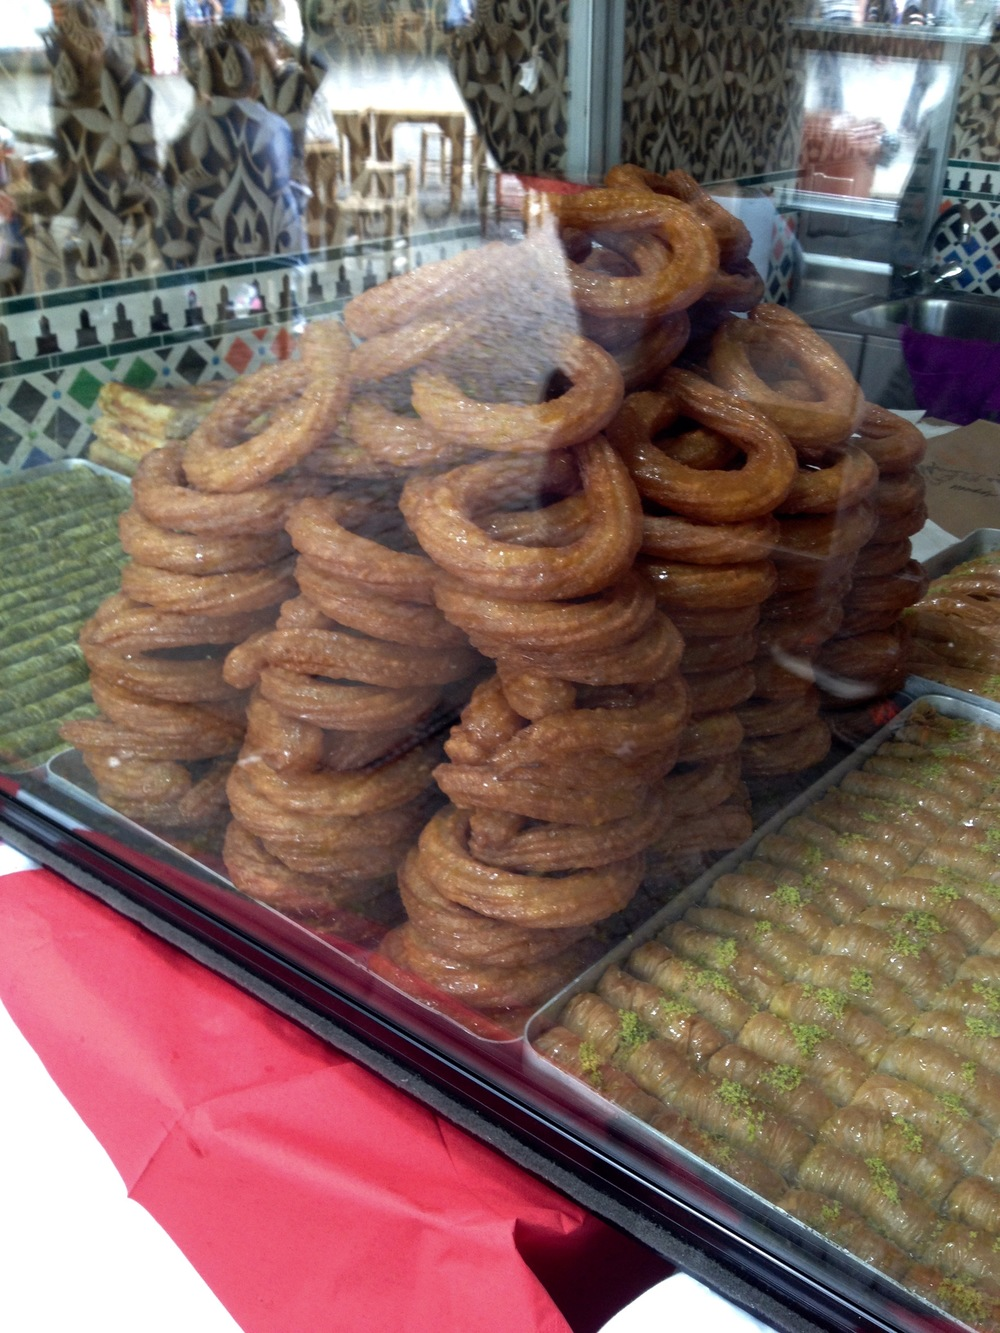 Churro-like dough soaked in a sweet syrup